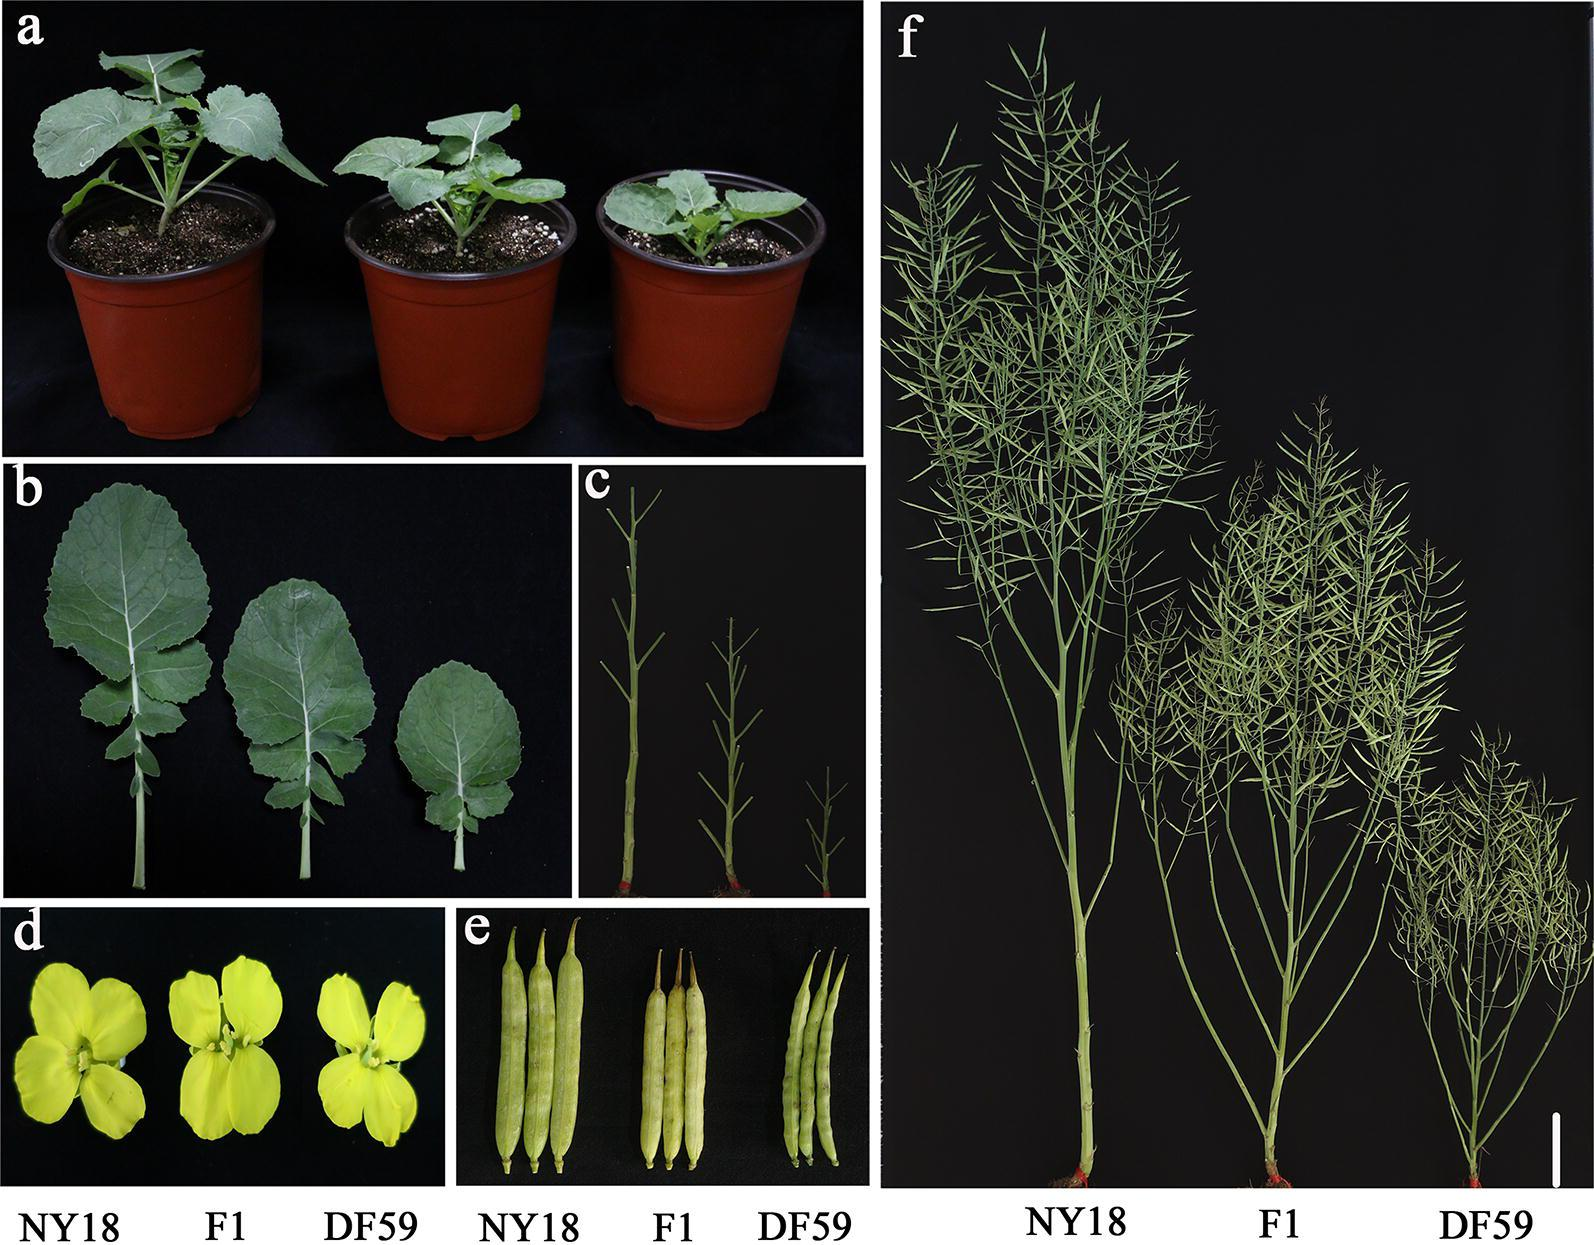 Phenotypic characterization of NY18, df59 , and their F 1 at different developmental stages. a Morphology of the NY18, df59 and their F 1 at the seedling stage; b comparison of leaf phenotypes at the seedling stage; c comparison of internode lengths at the mature stage; d comparison of petal phenotypes at the flowering stage; e comparison of silique-related traits at the mature stage; f comparison of plant heights and plant architecture at the mature stage. Scale bars = 10 cm